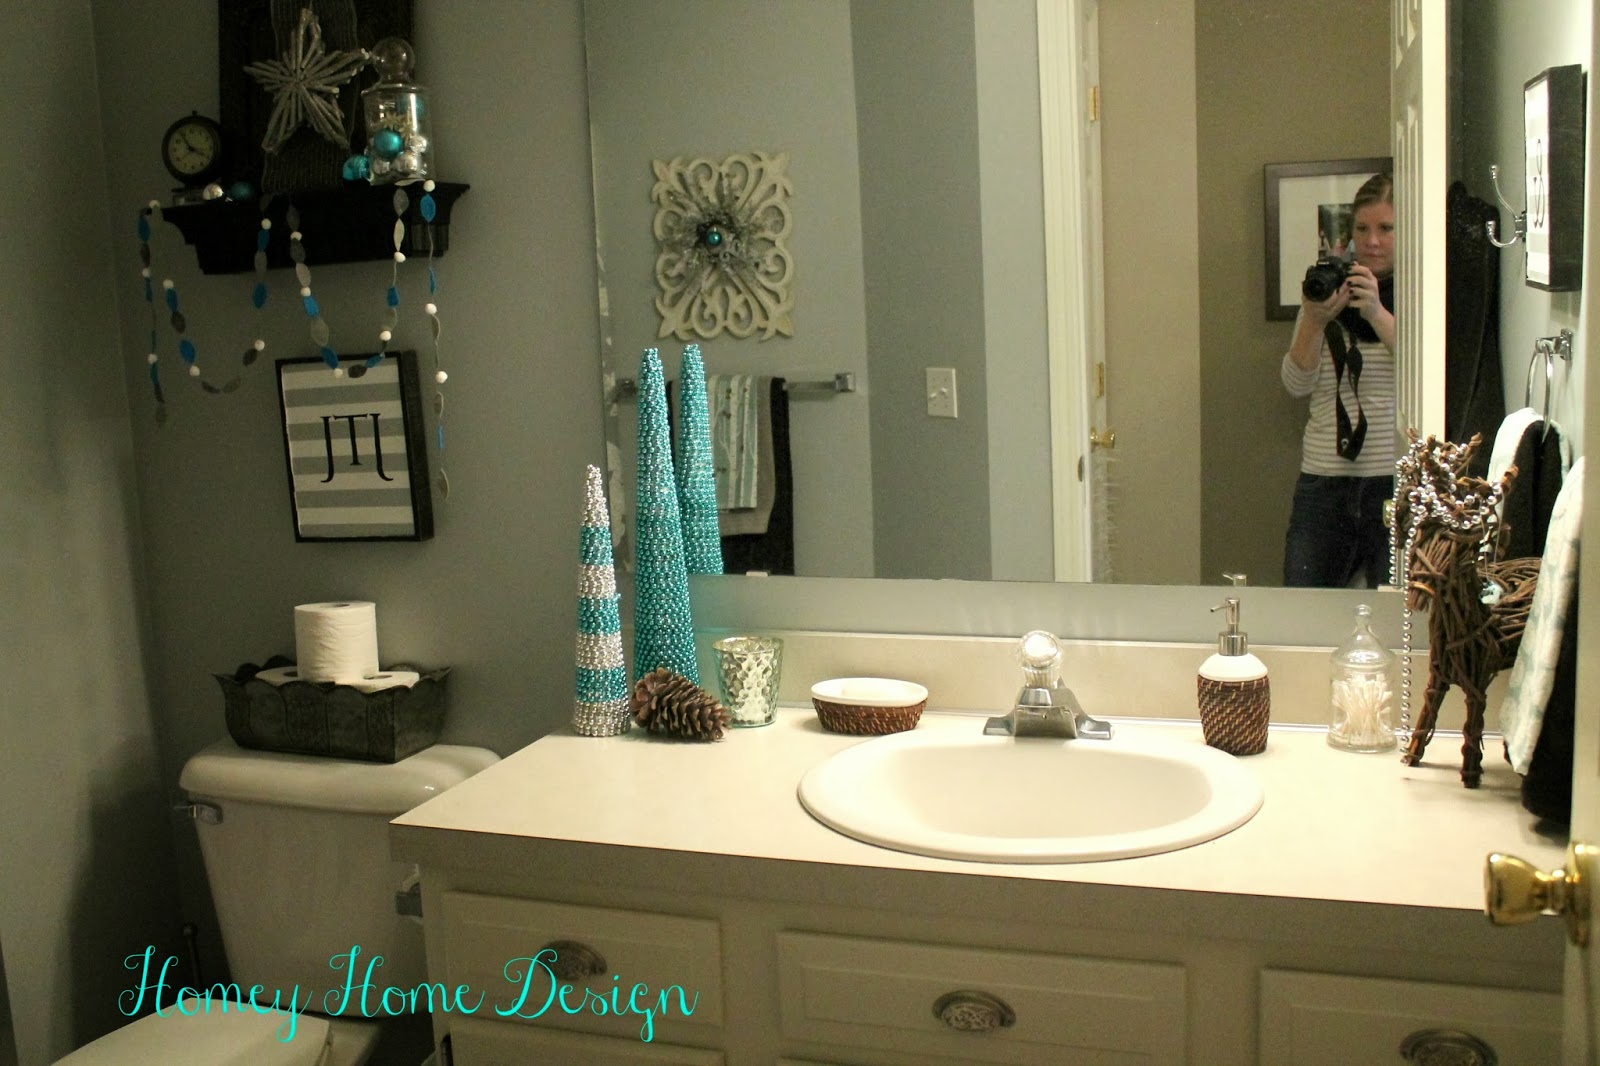 homey home design Bathroom Christmas Ideas